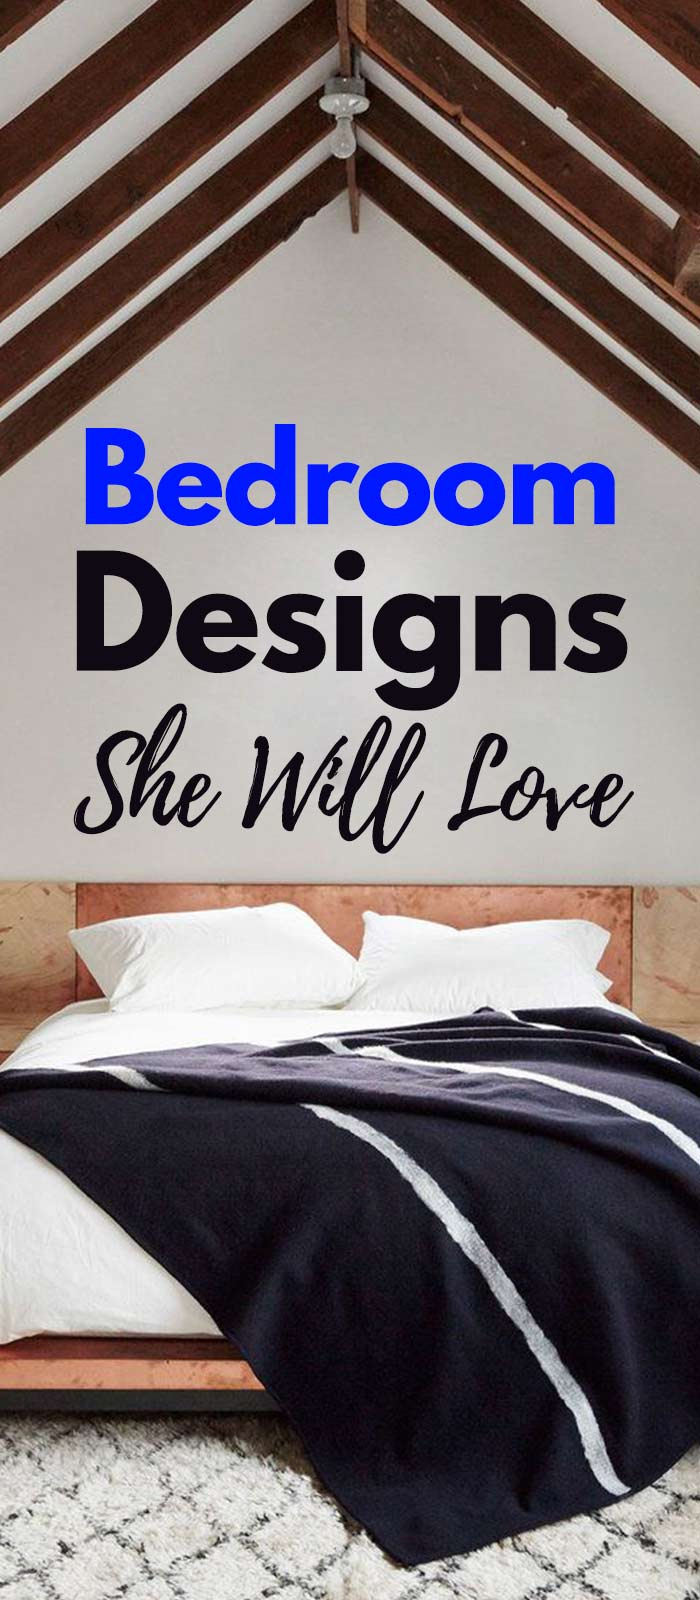 25 Bedroom Designs That She Will Love.